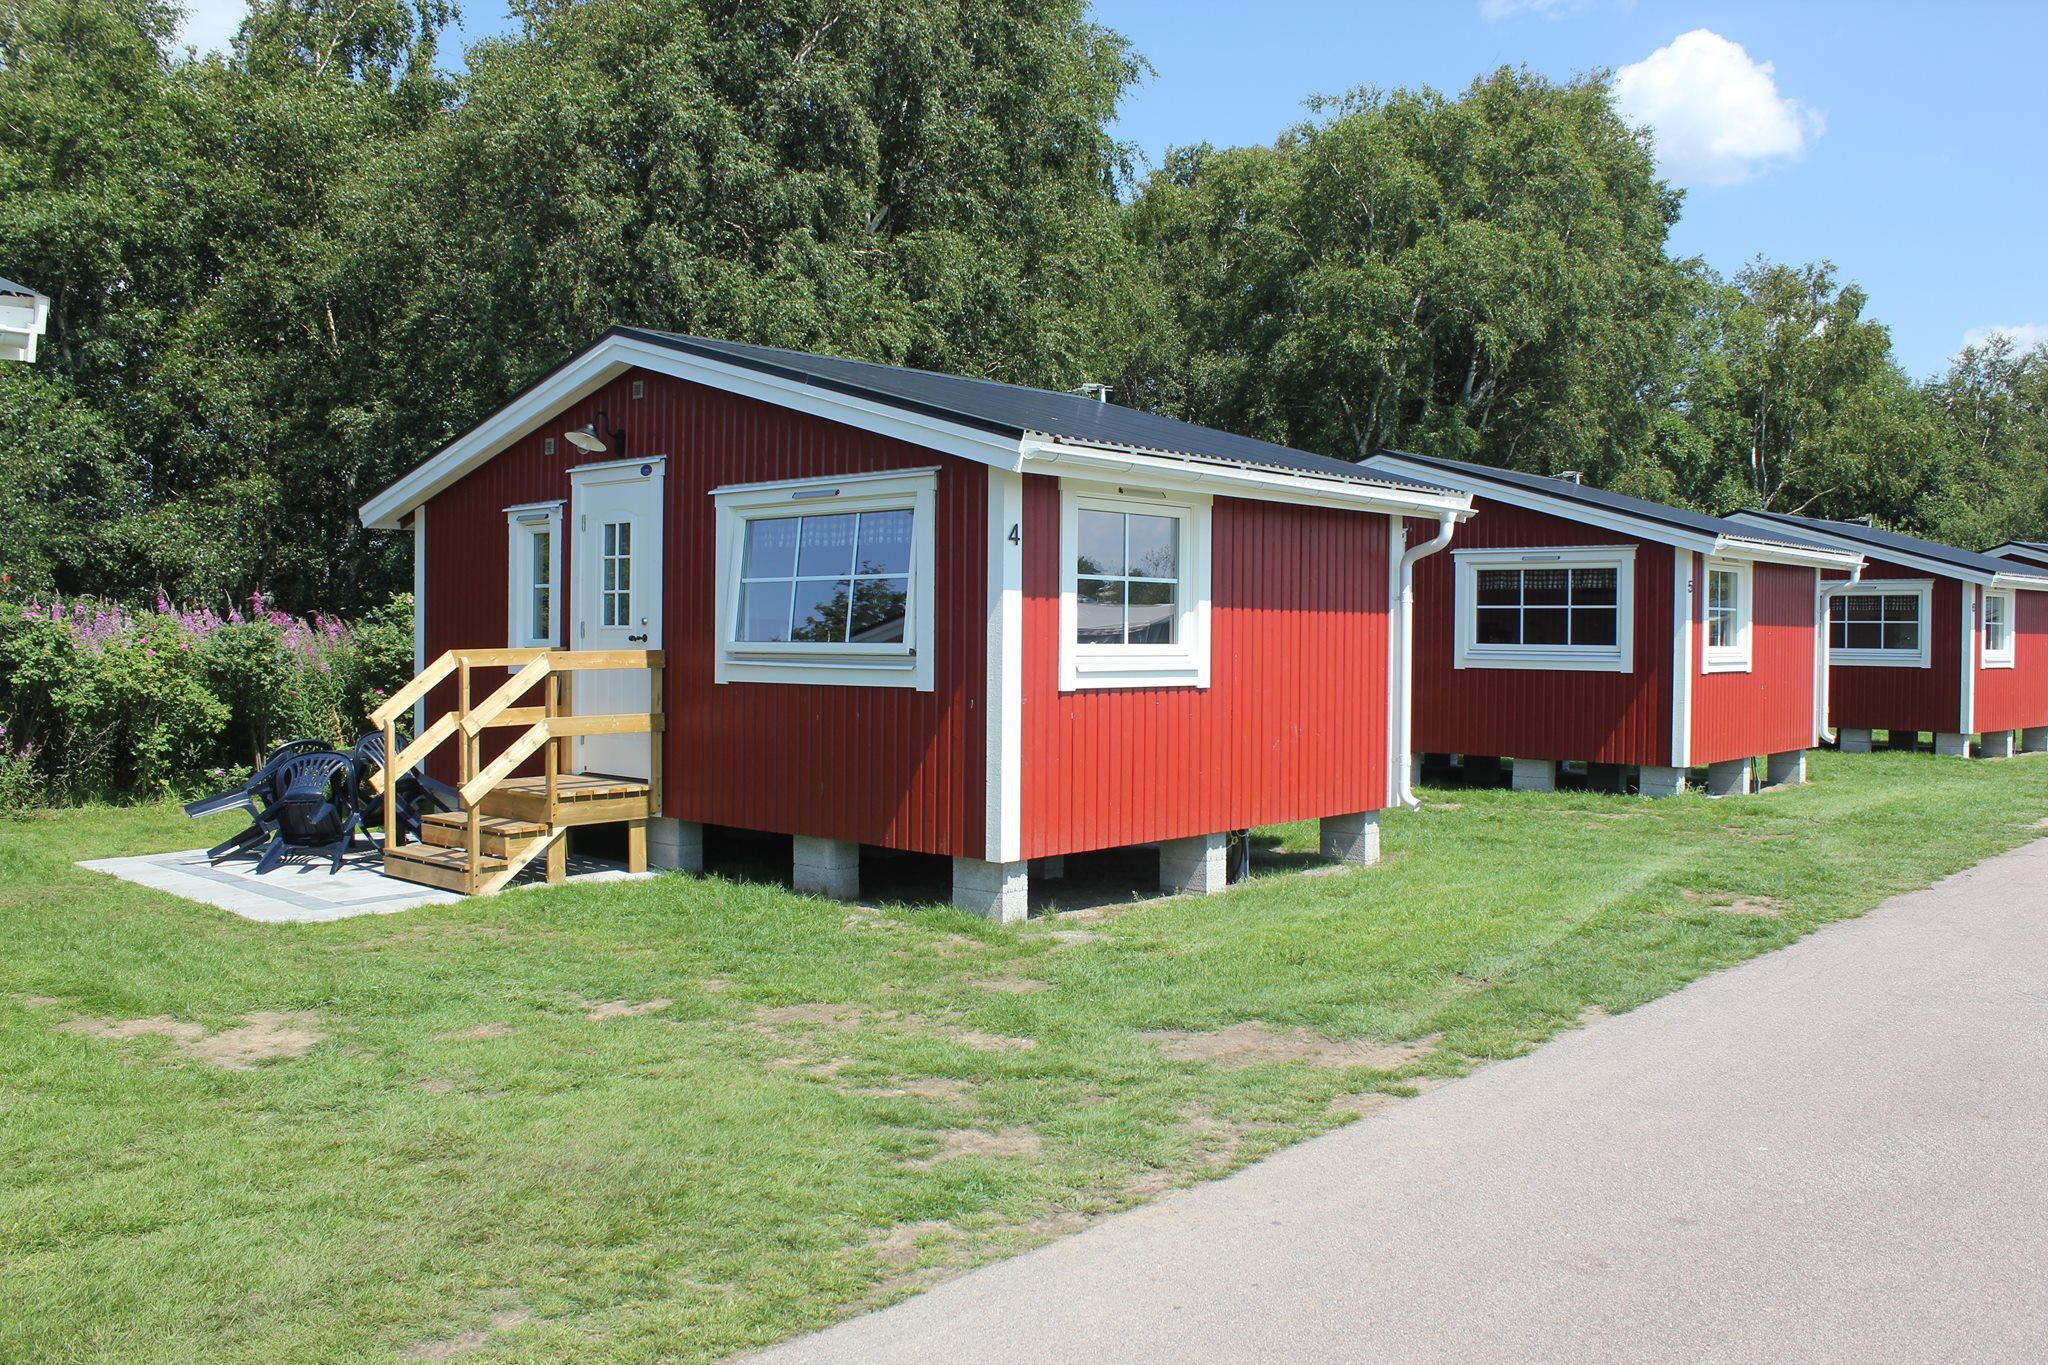 Hagöns Camping/Cottages